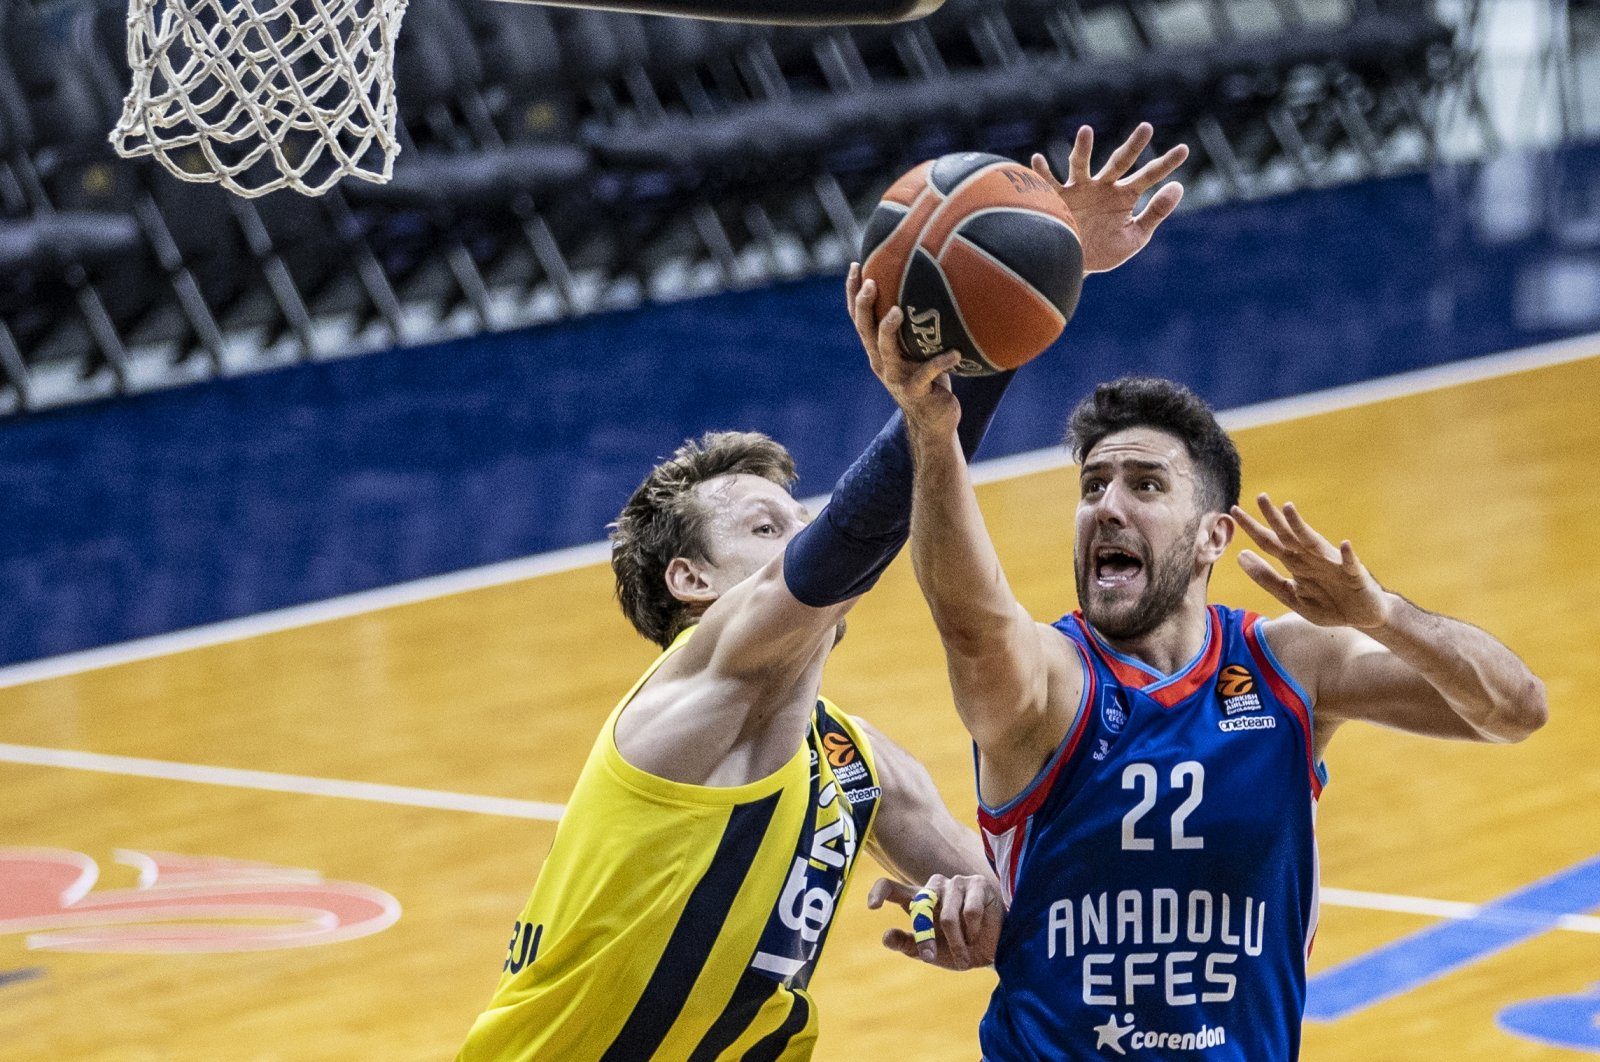 Fenerbahçe Beko's Jan Vesely (L) tries to block Anadolu Efes' Vasilije Micic (R) in THY EuroLeague match at the Ülker Sports and Event Hall, Istanbul, Turkey, Feb. 26, 2021. (AA Photo)